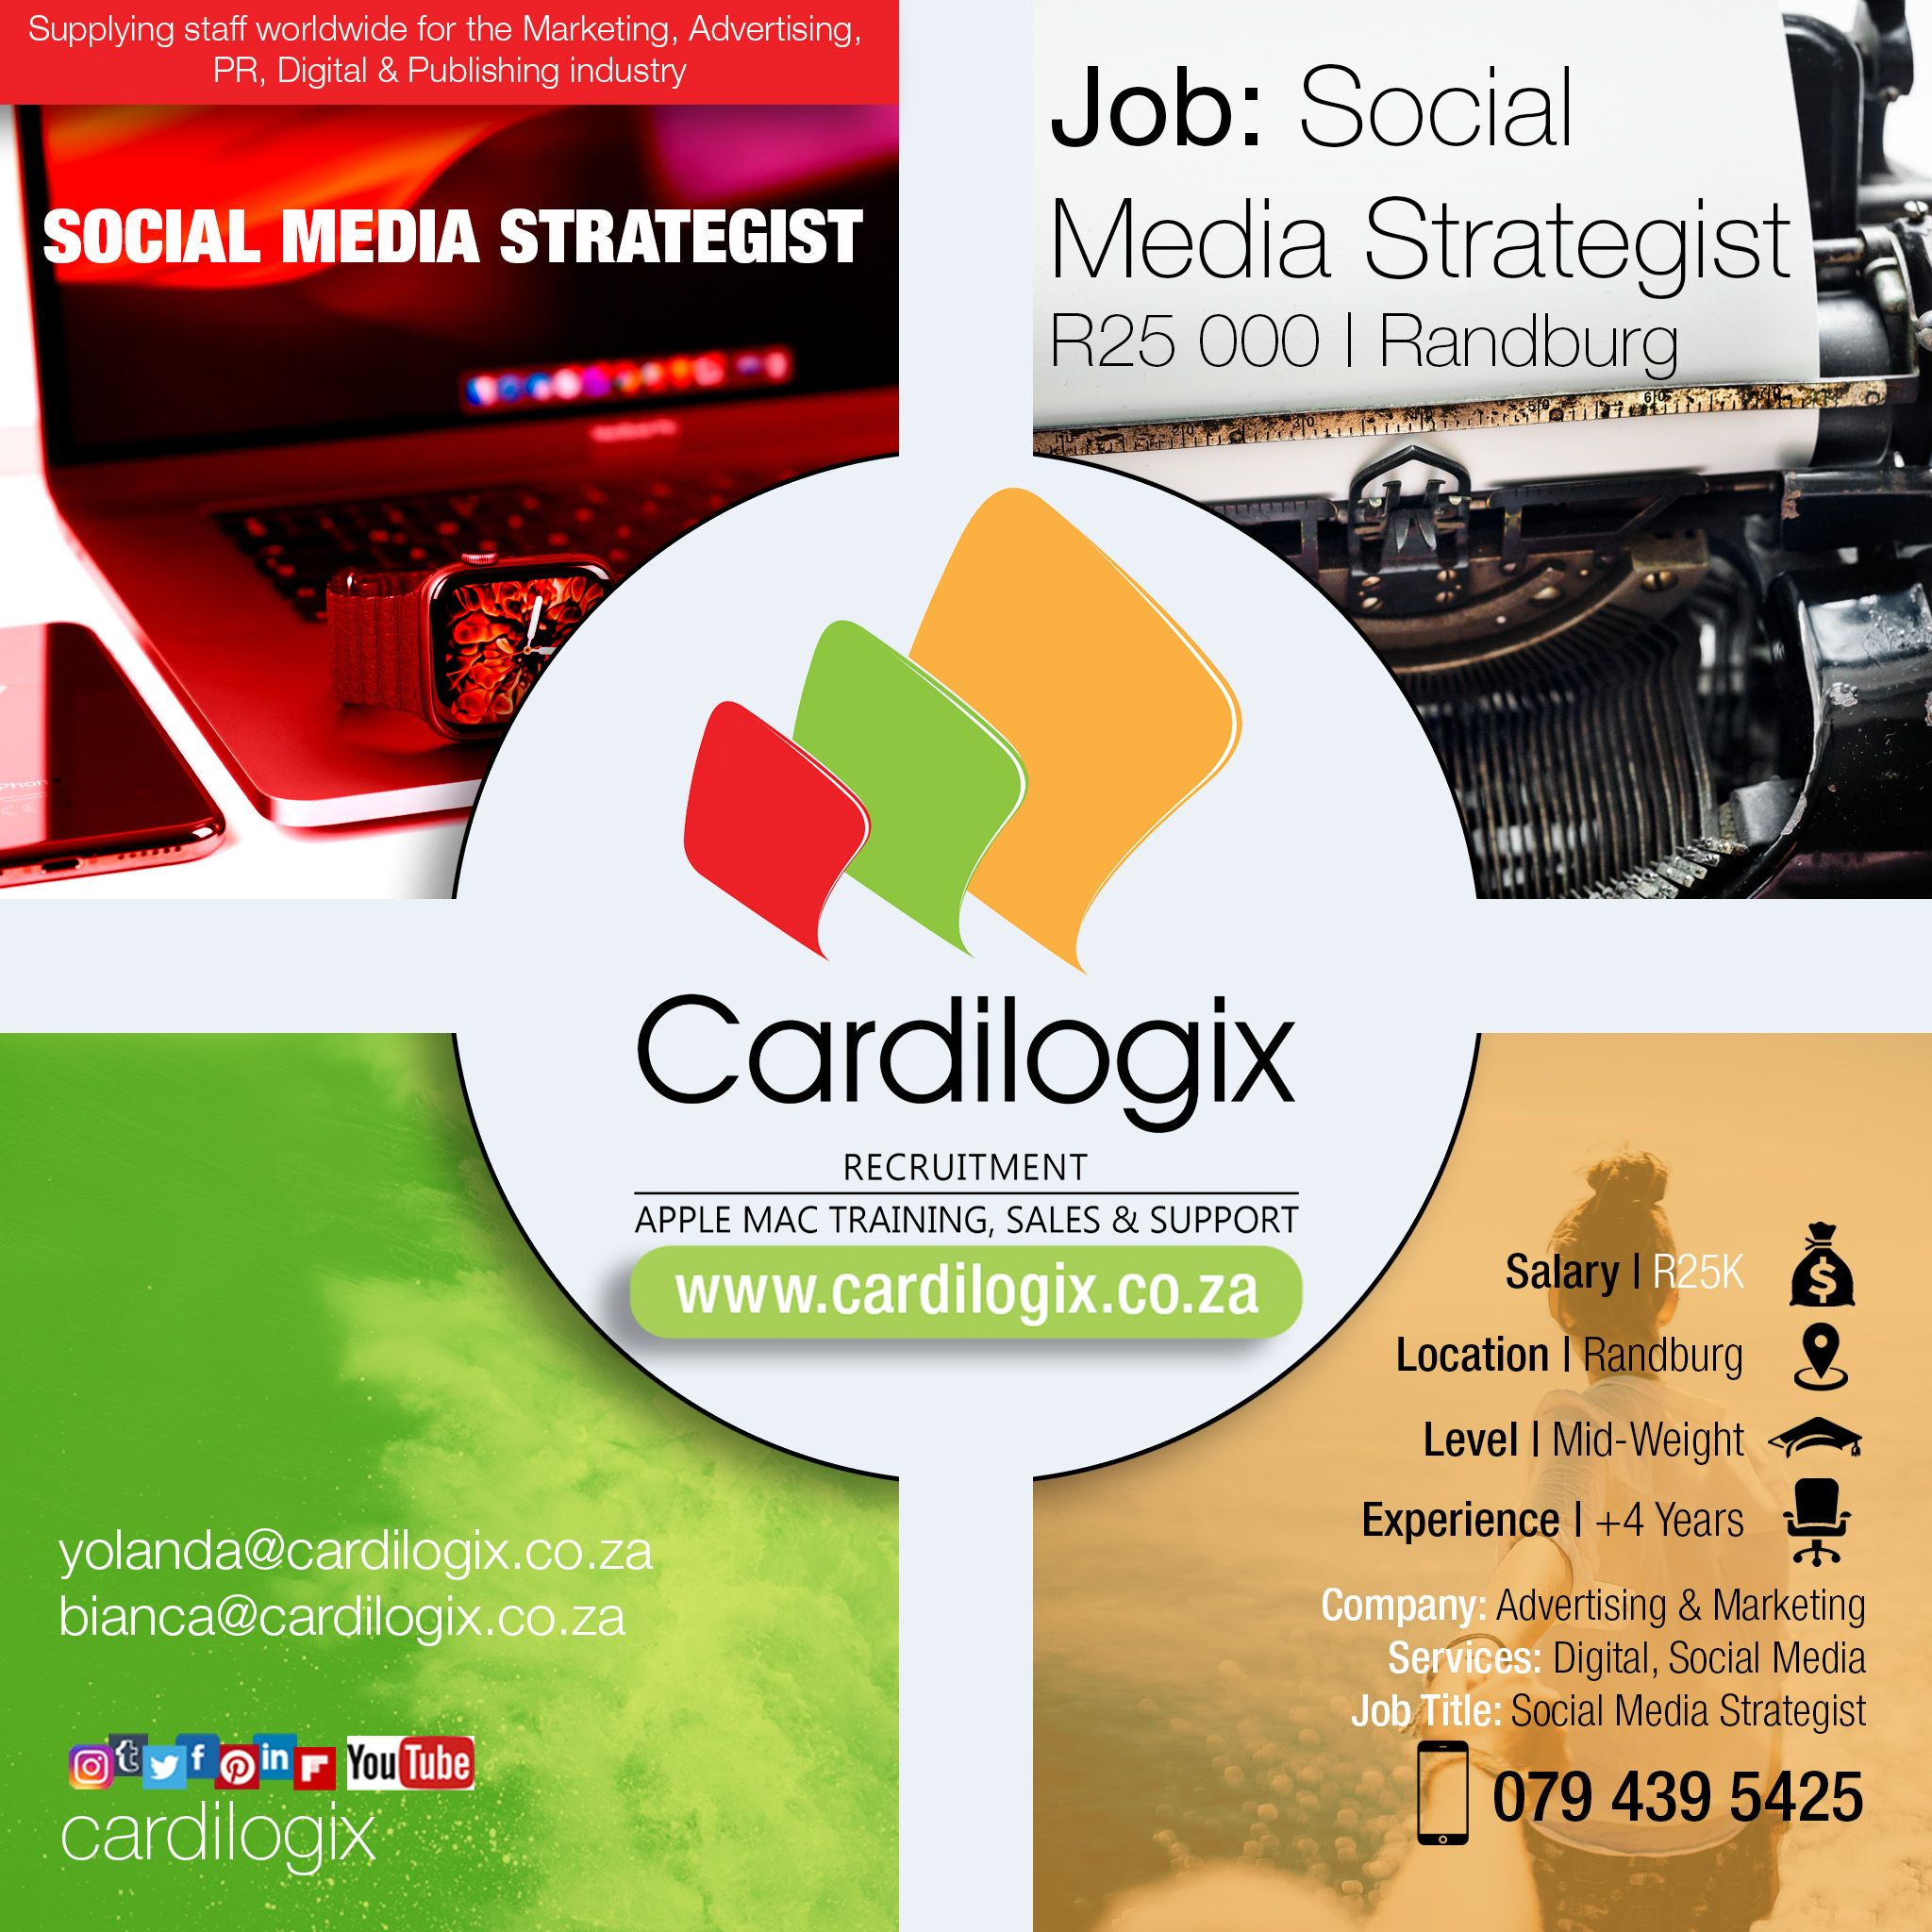 Socialmediastrategist Strategy Socialmedia Jobs Dreamjobs Adagency Socialmediamarketing Facebook Twitter Linkedin Instagram Snapchat Apps Youtube